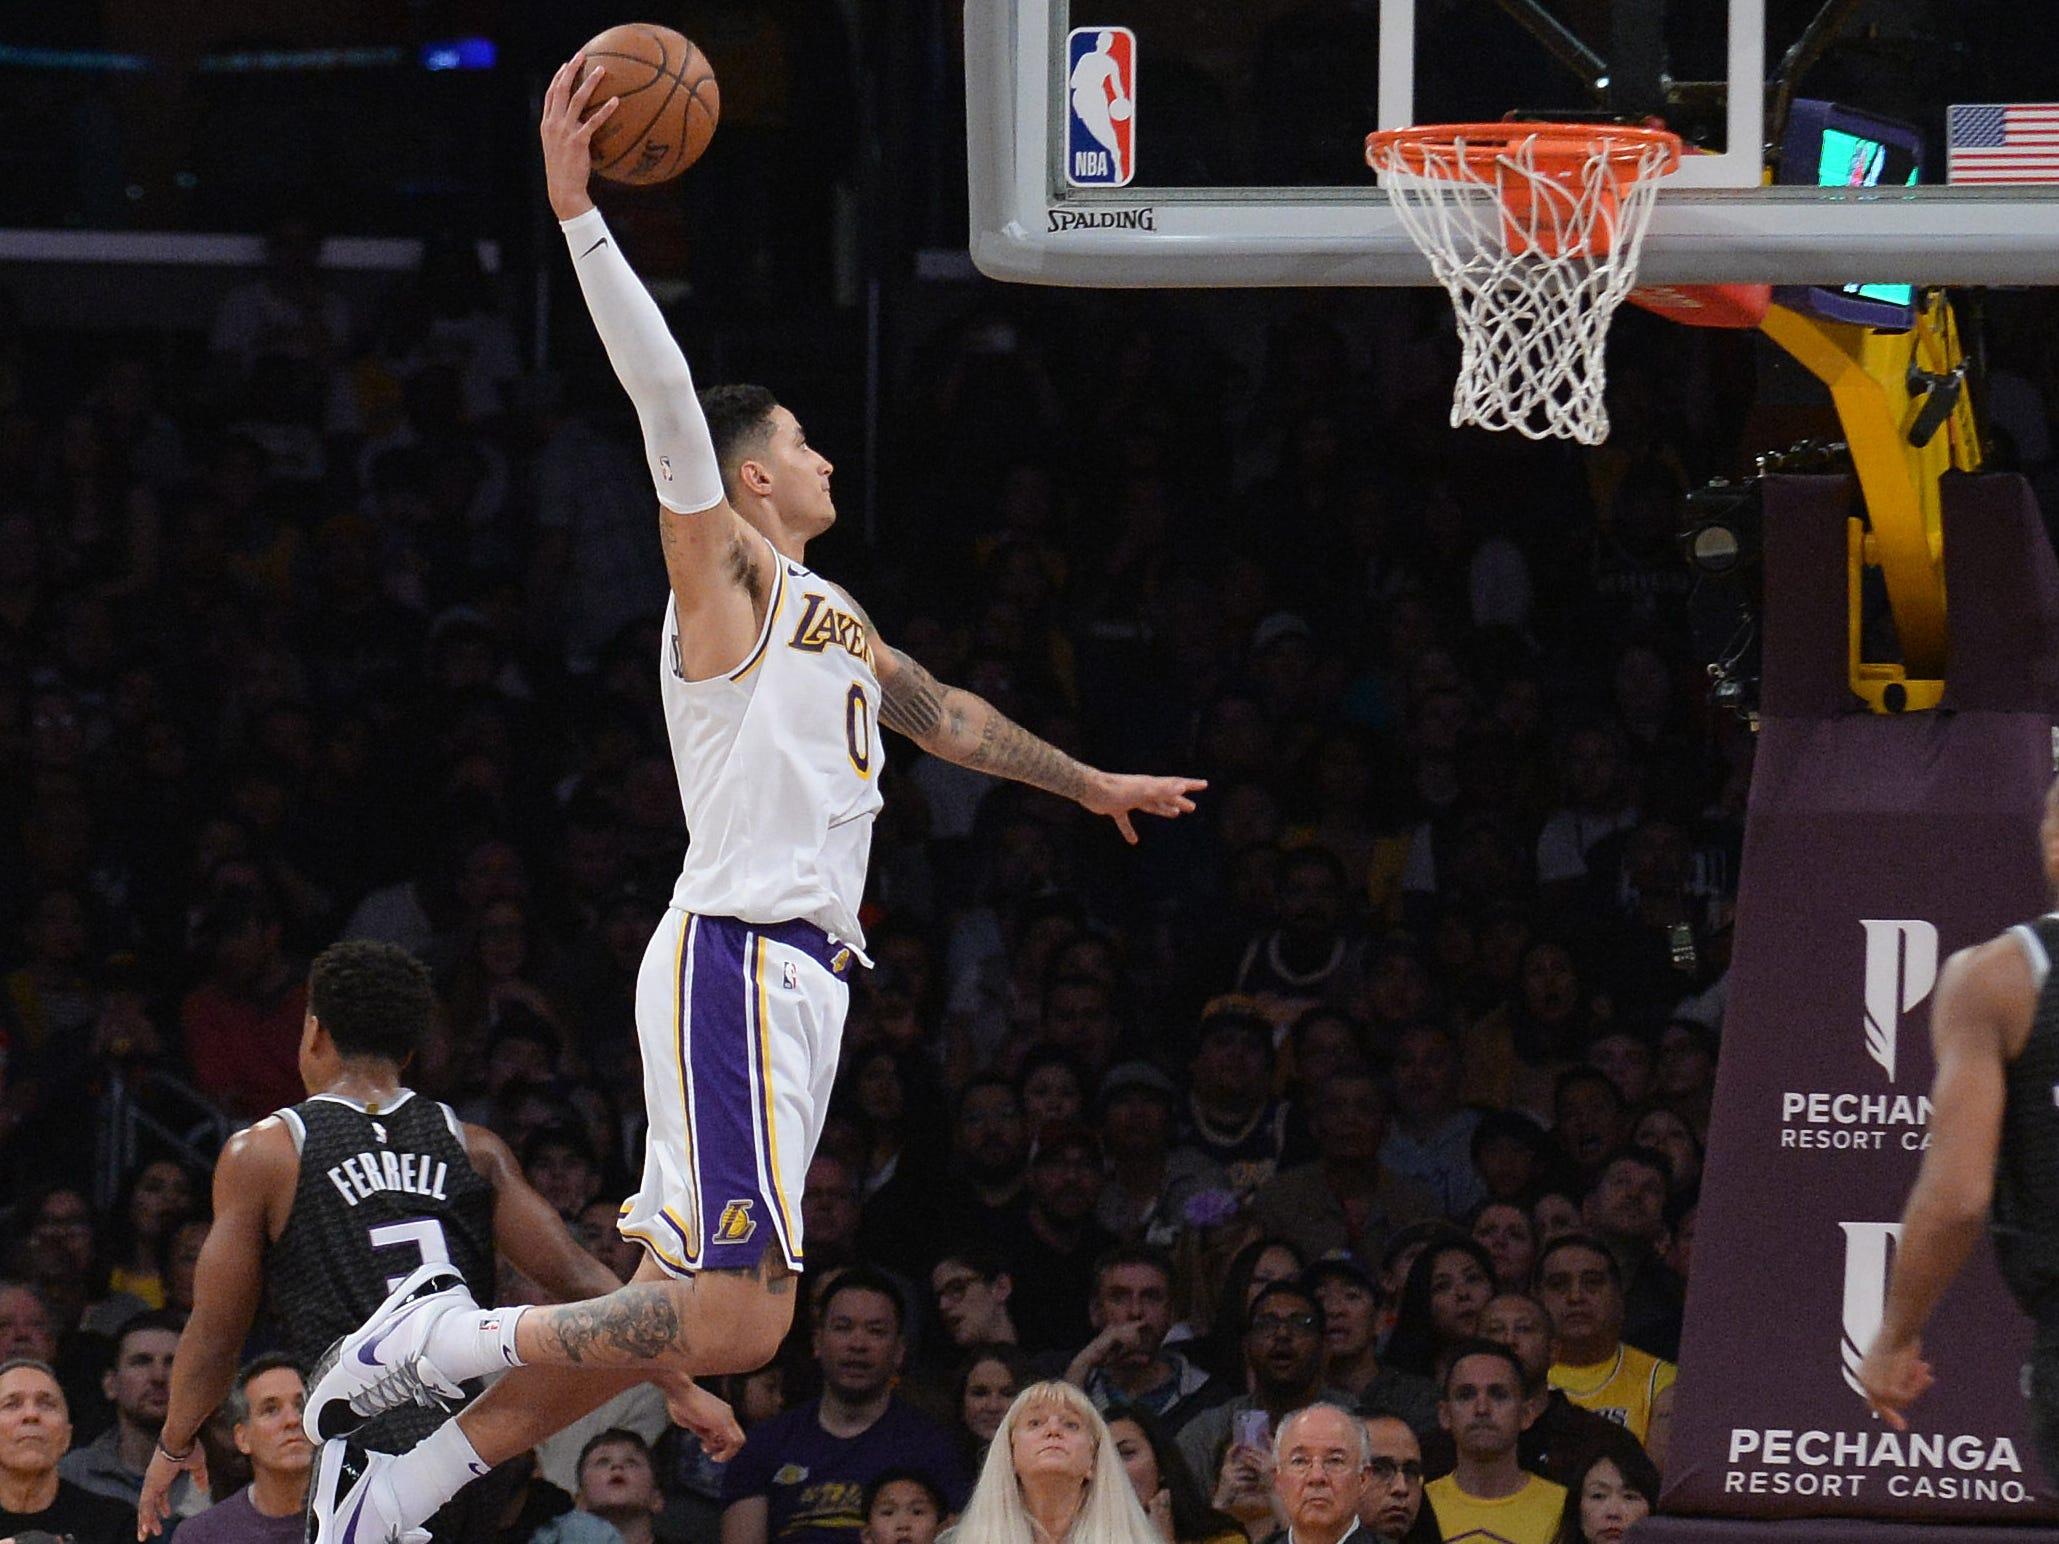 March 24: Lakers forward Kyle Kuzma soars to the hoop for the one-handed flush against the Kings.